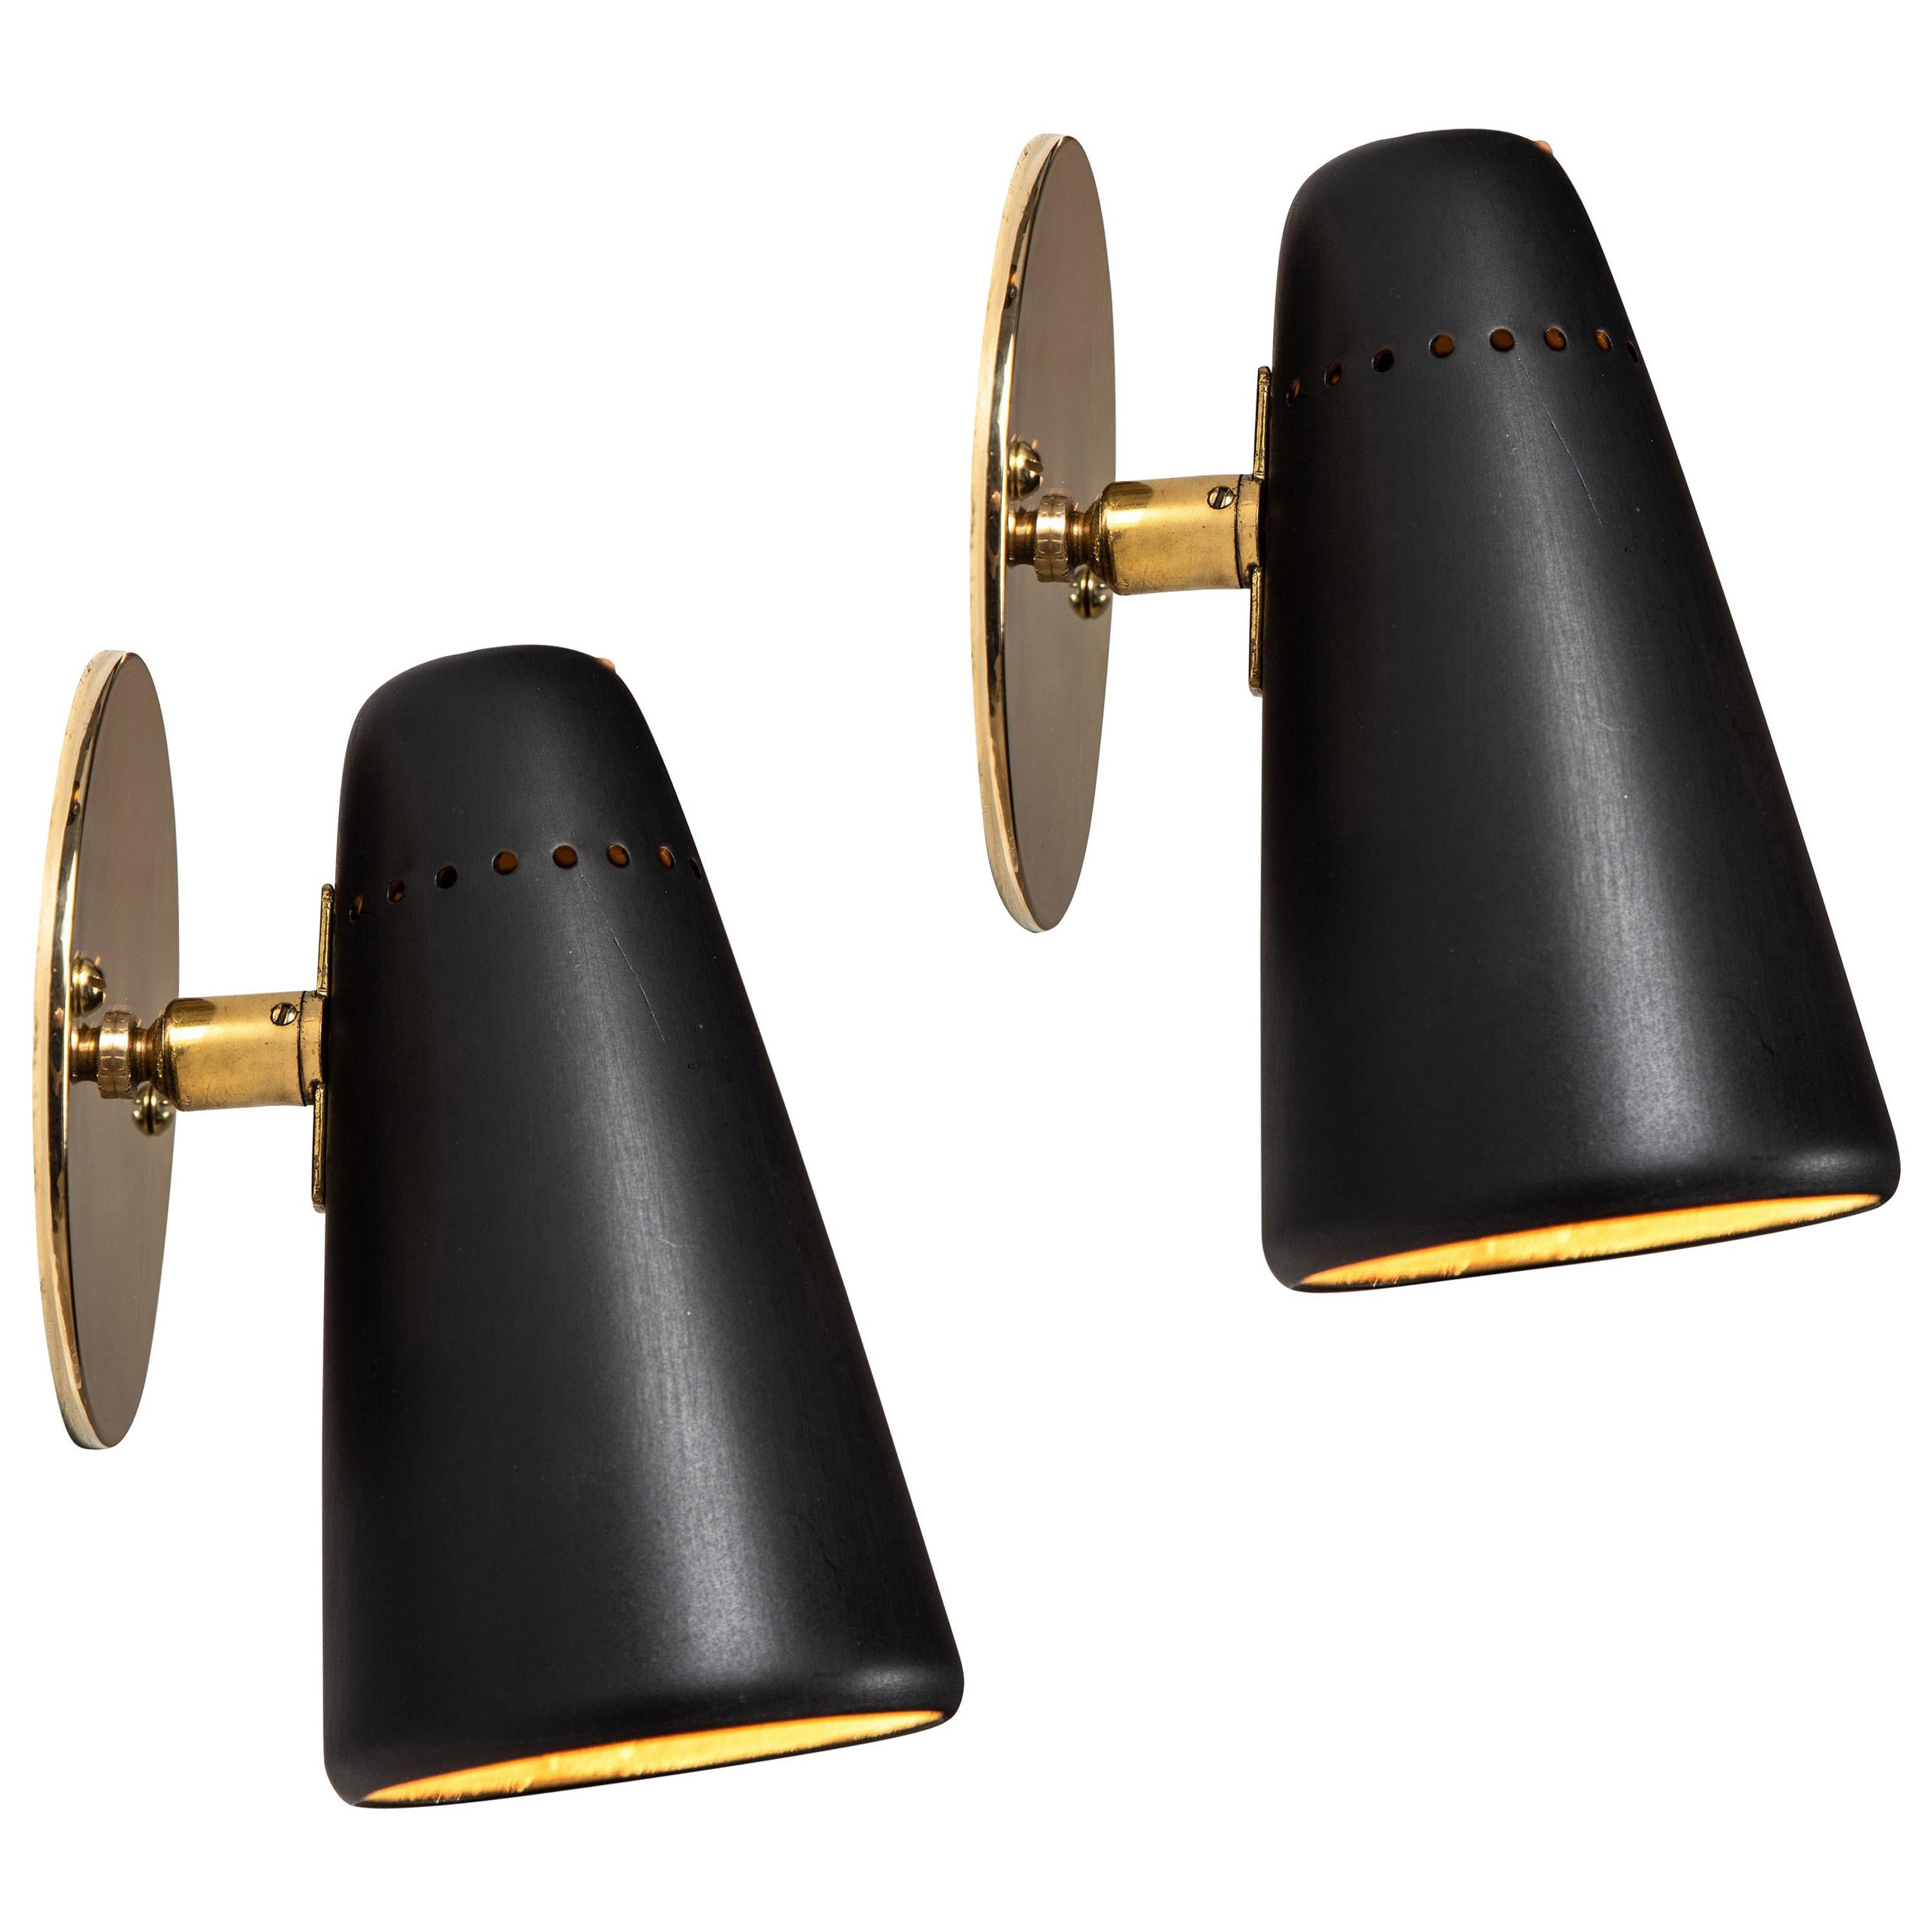 Pair of 1950s Stilnovo Sconces in Black and Brass with Yellow Label